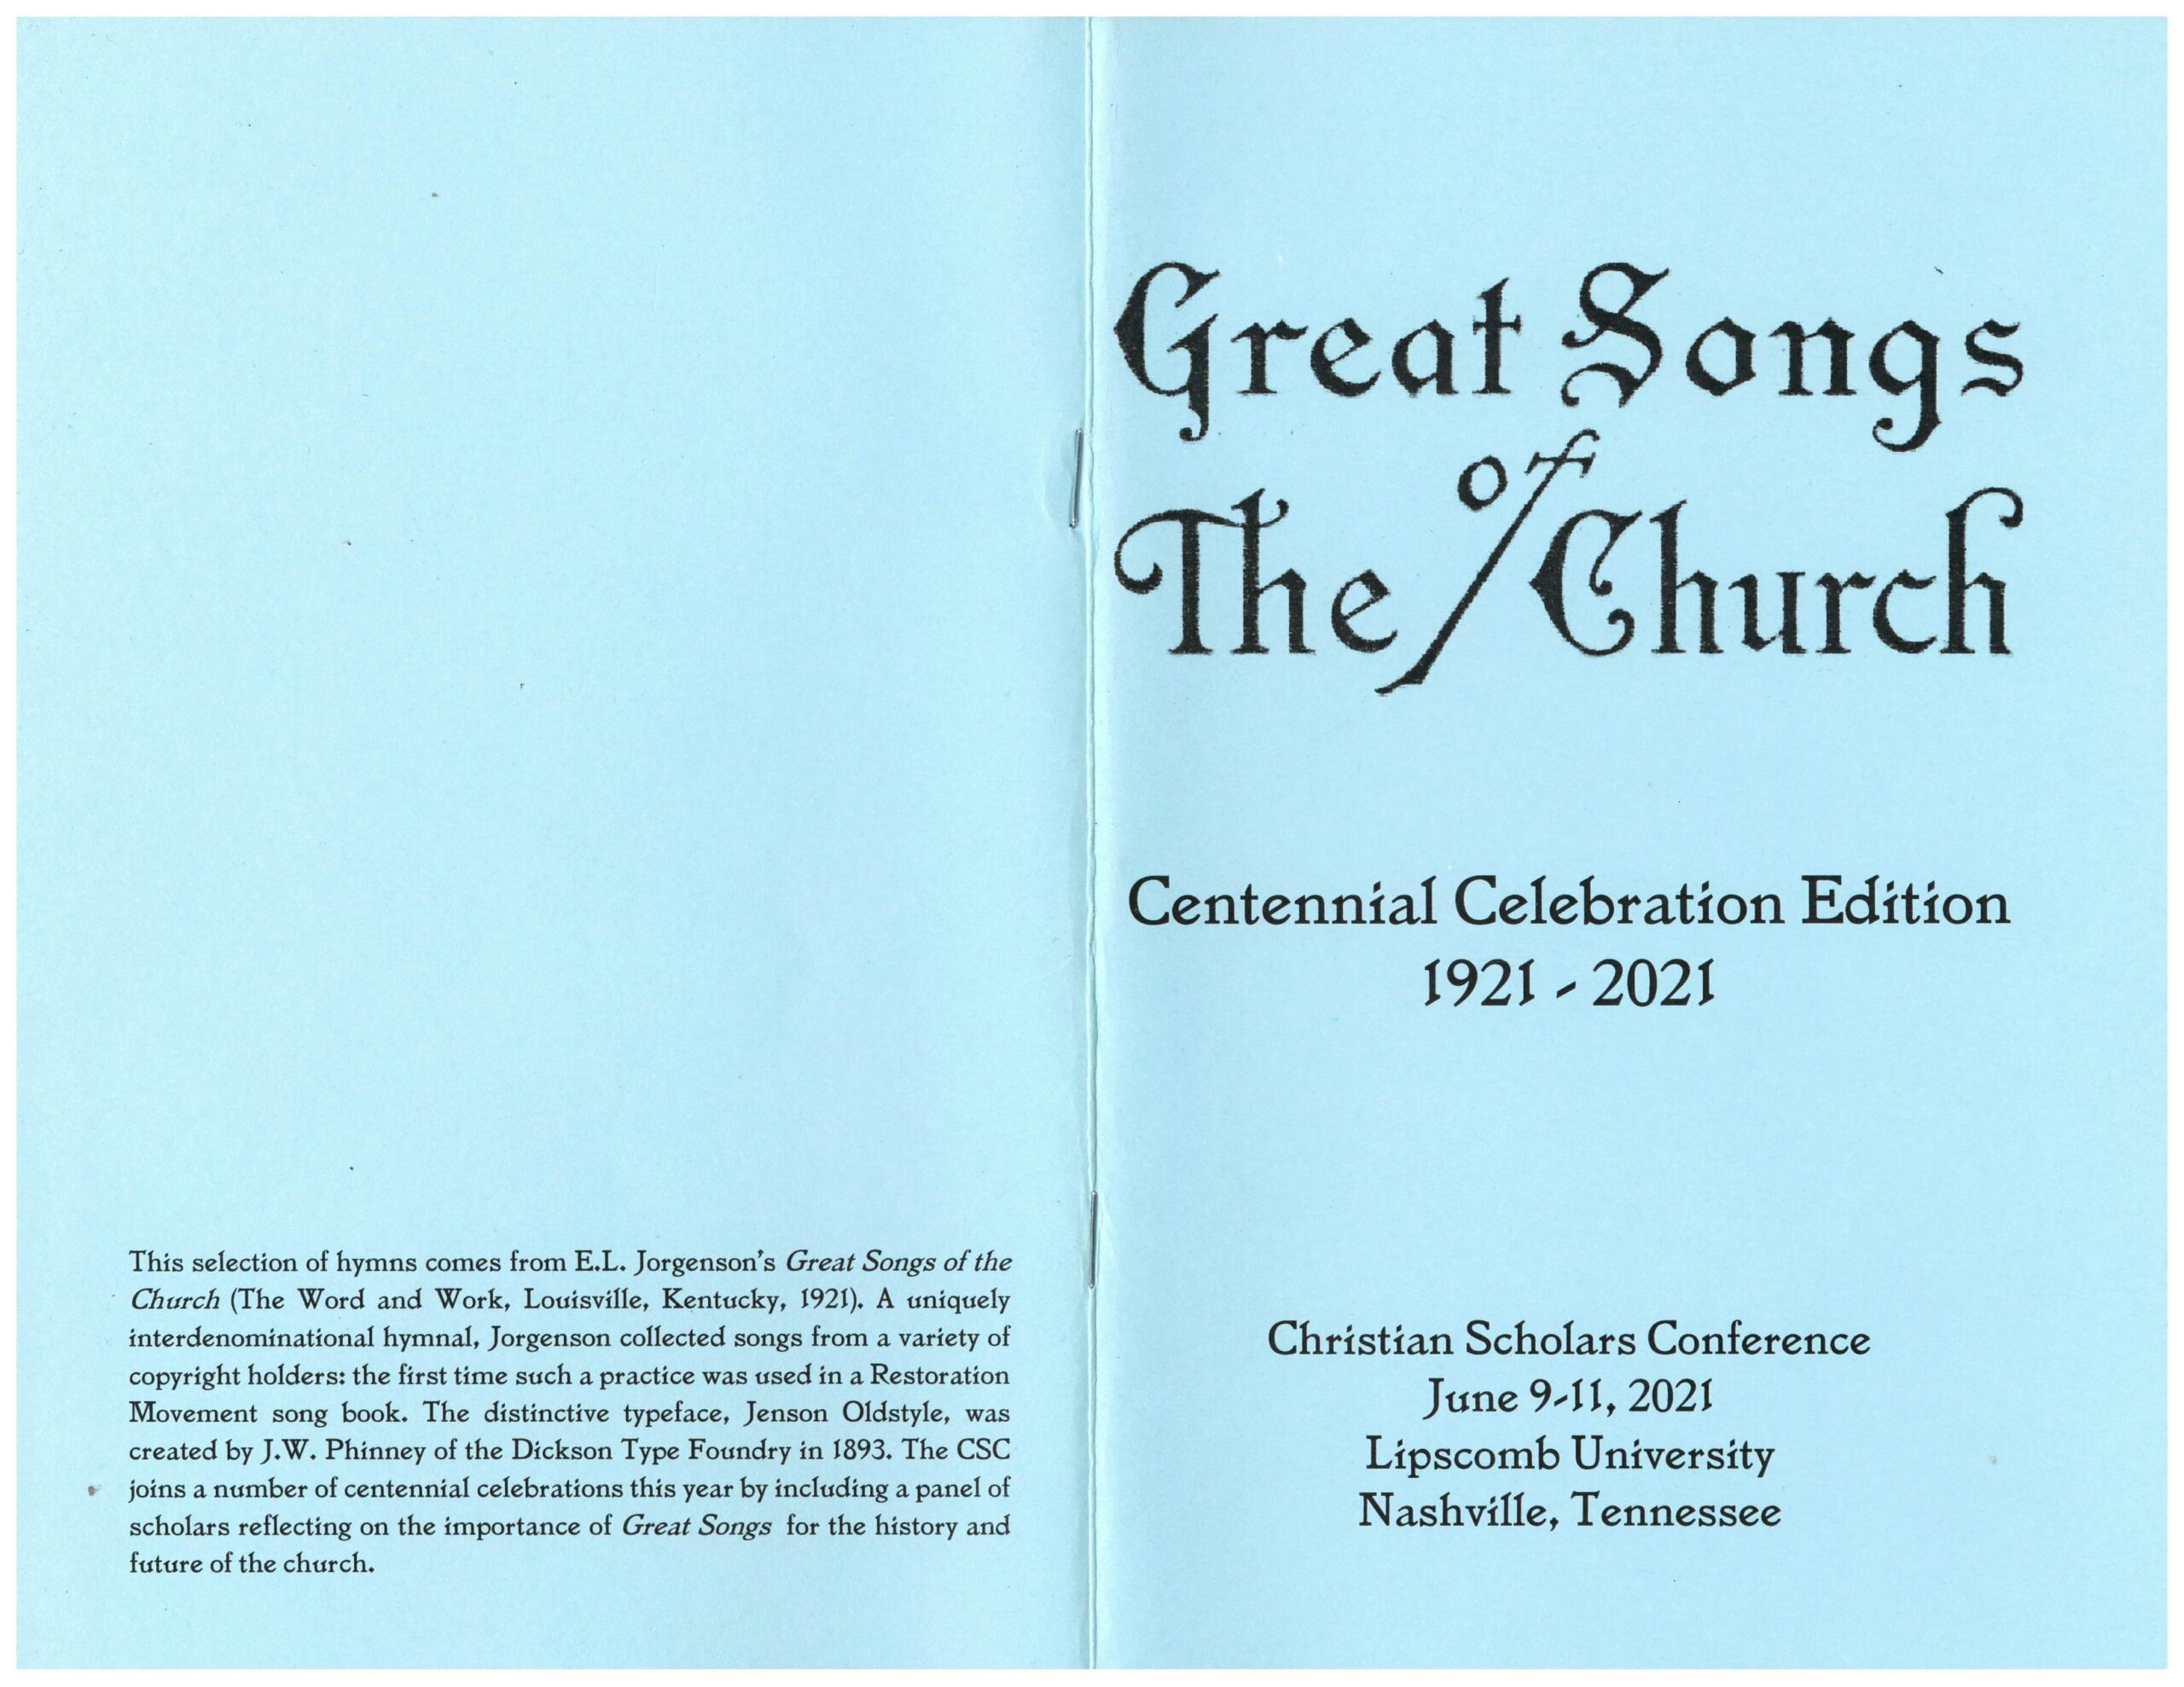 Great Songs of the Church Centennial Celebration Edition, 1921-2021.